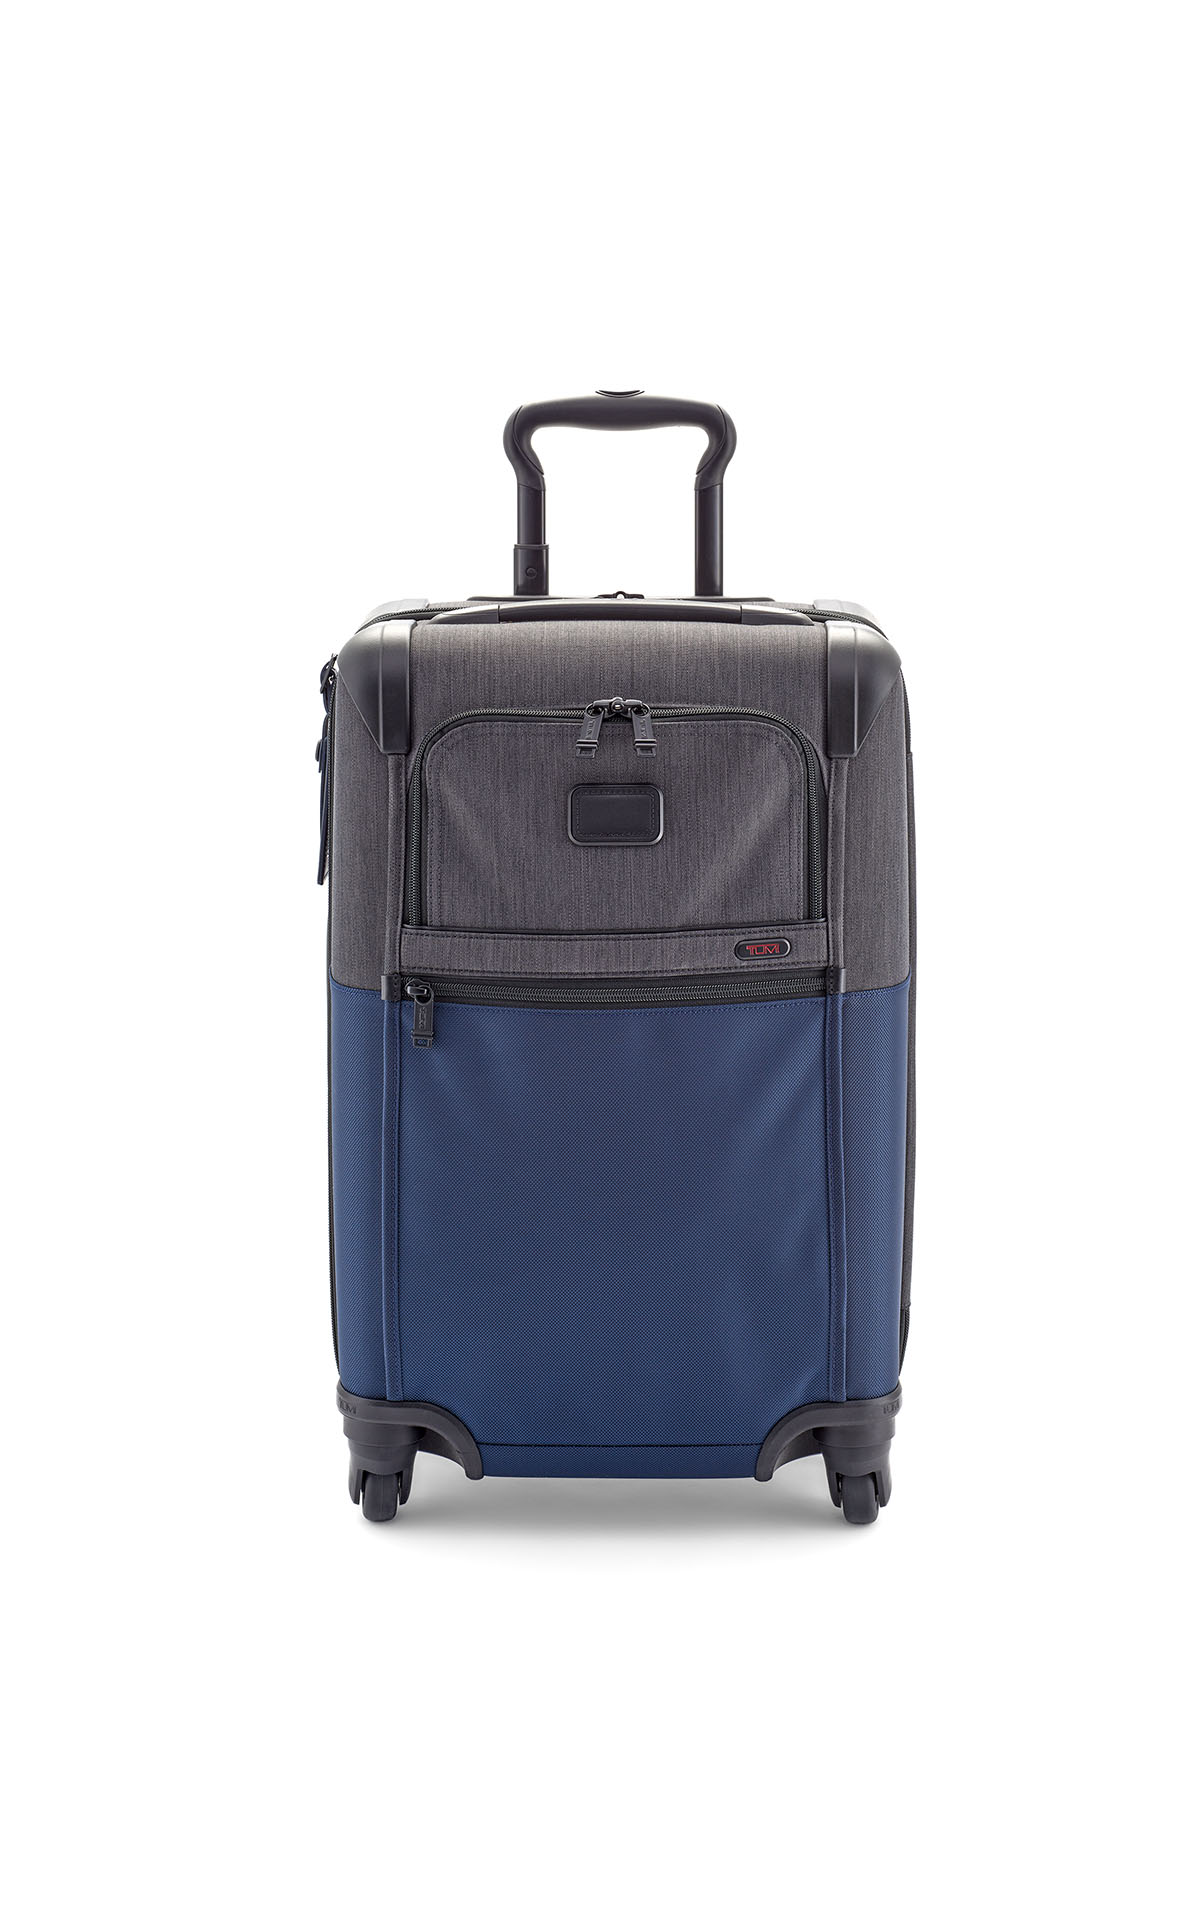 Tumi Intl Exp 4 Wheel Carry On at The Bicester Village Shopping Collection